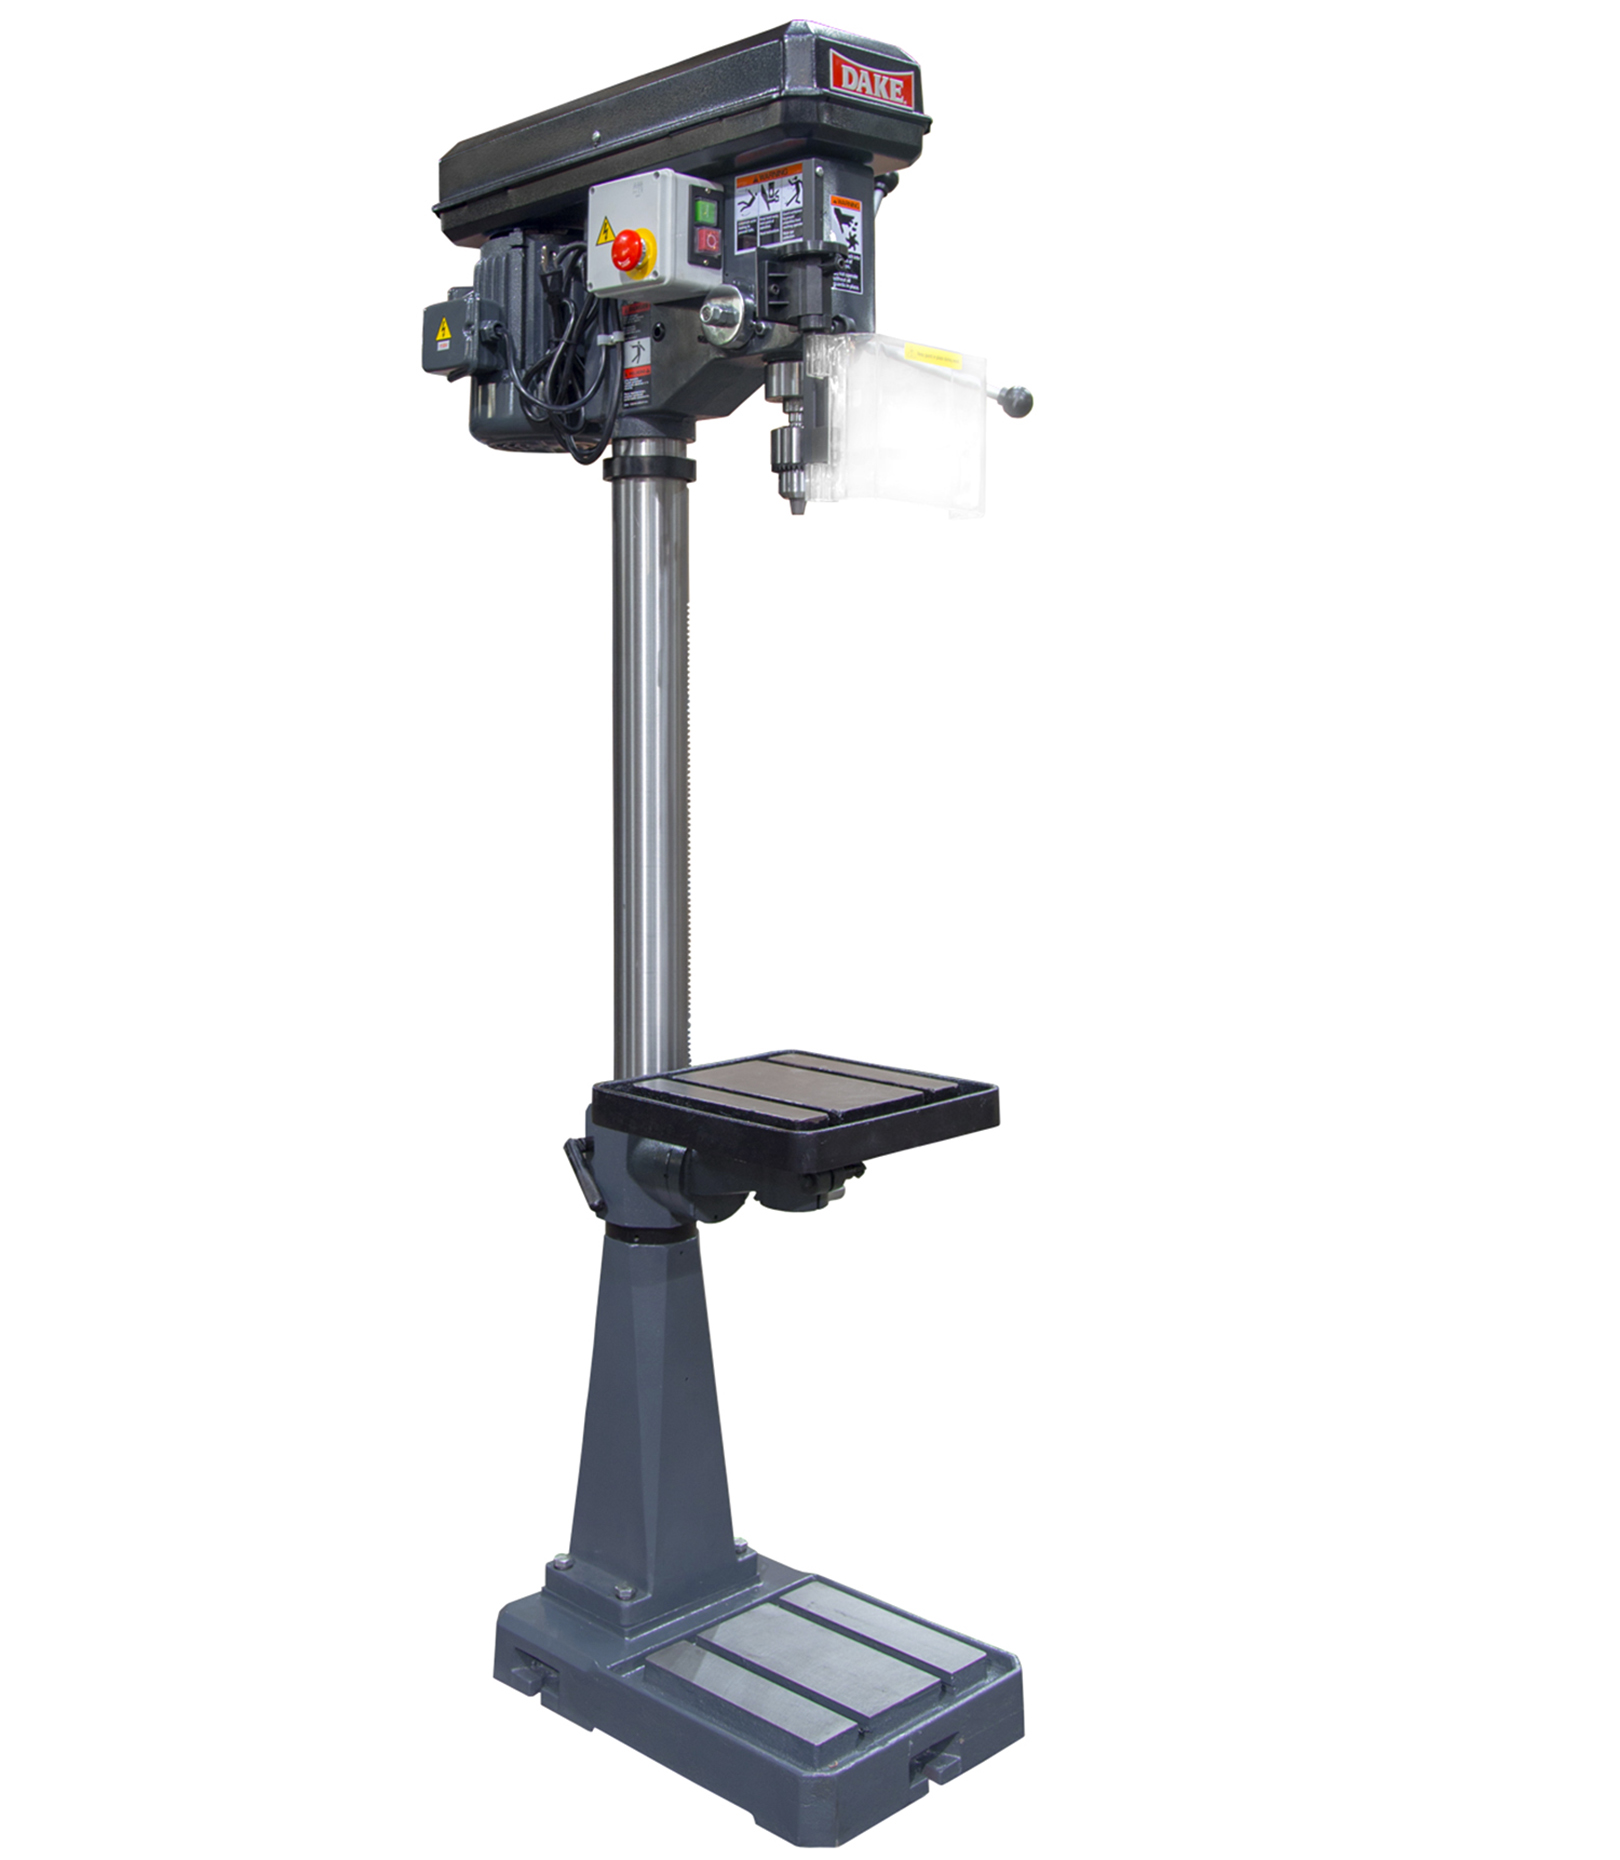 Floor Drill Press Sb 25 Dake Corp